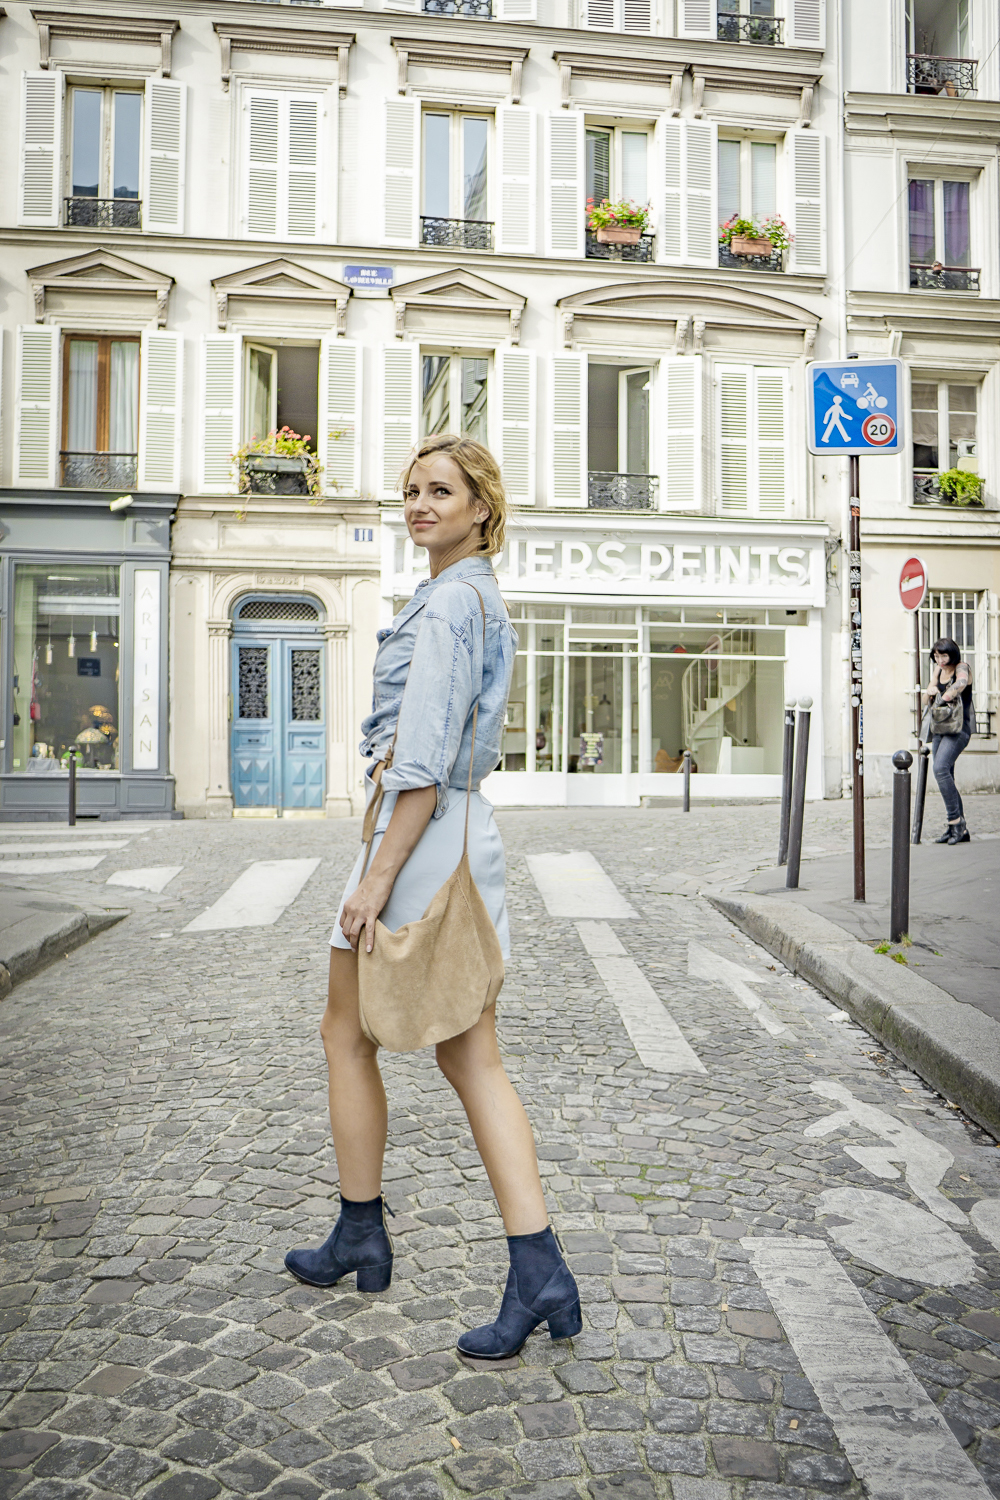 blue-dress-mini-denim-mango-shirt-hm-shoes-navy-boots-ootd-lookbook-look-outfit-blonde-bloger-tumblr-girl-paris